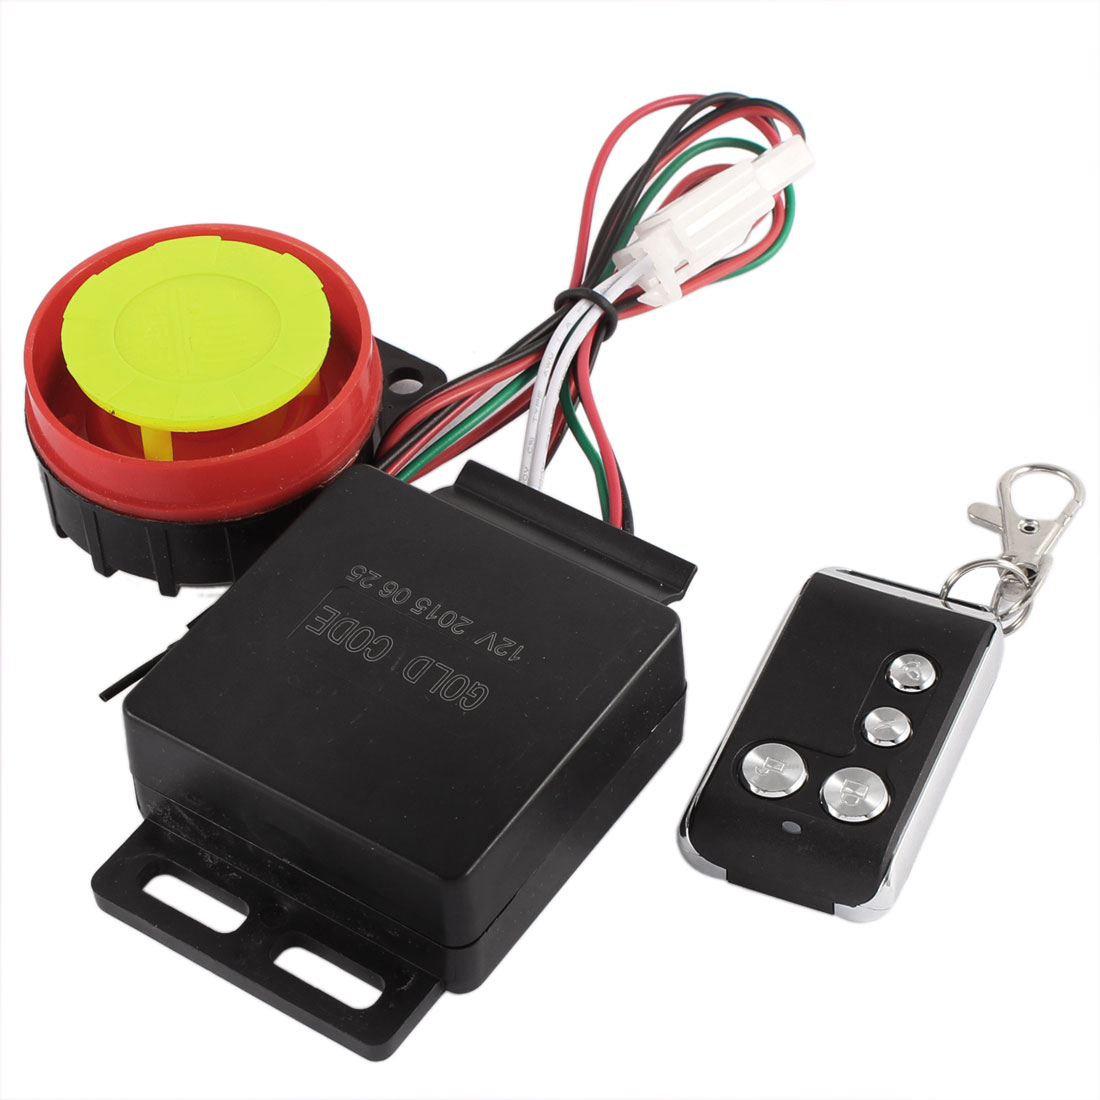 Unique BargainsDC 12V Motorcycle Anti-theft Security Alarm System Set w Remote Controller